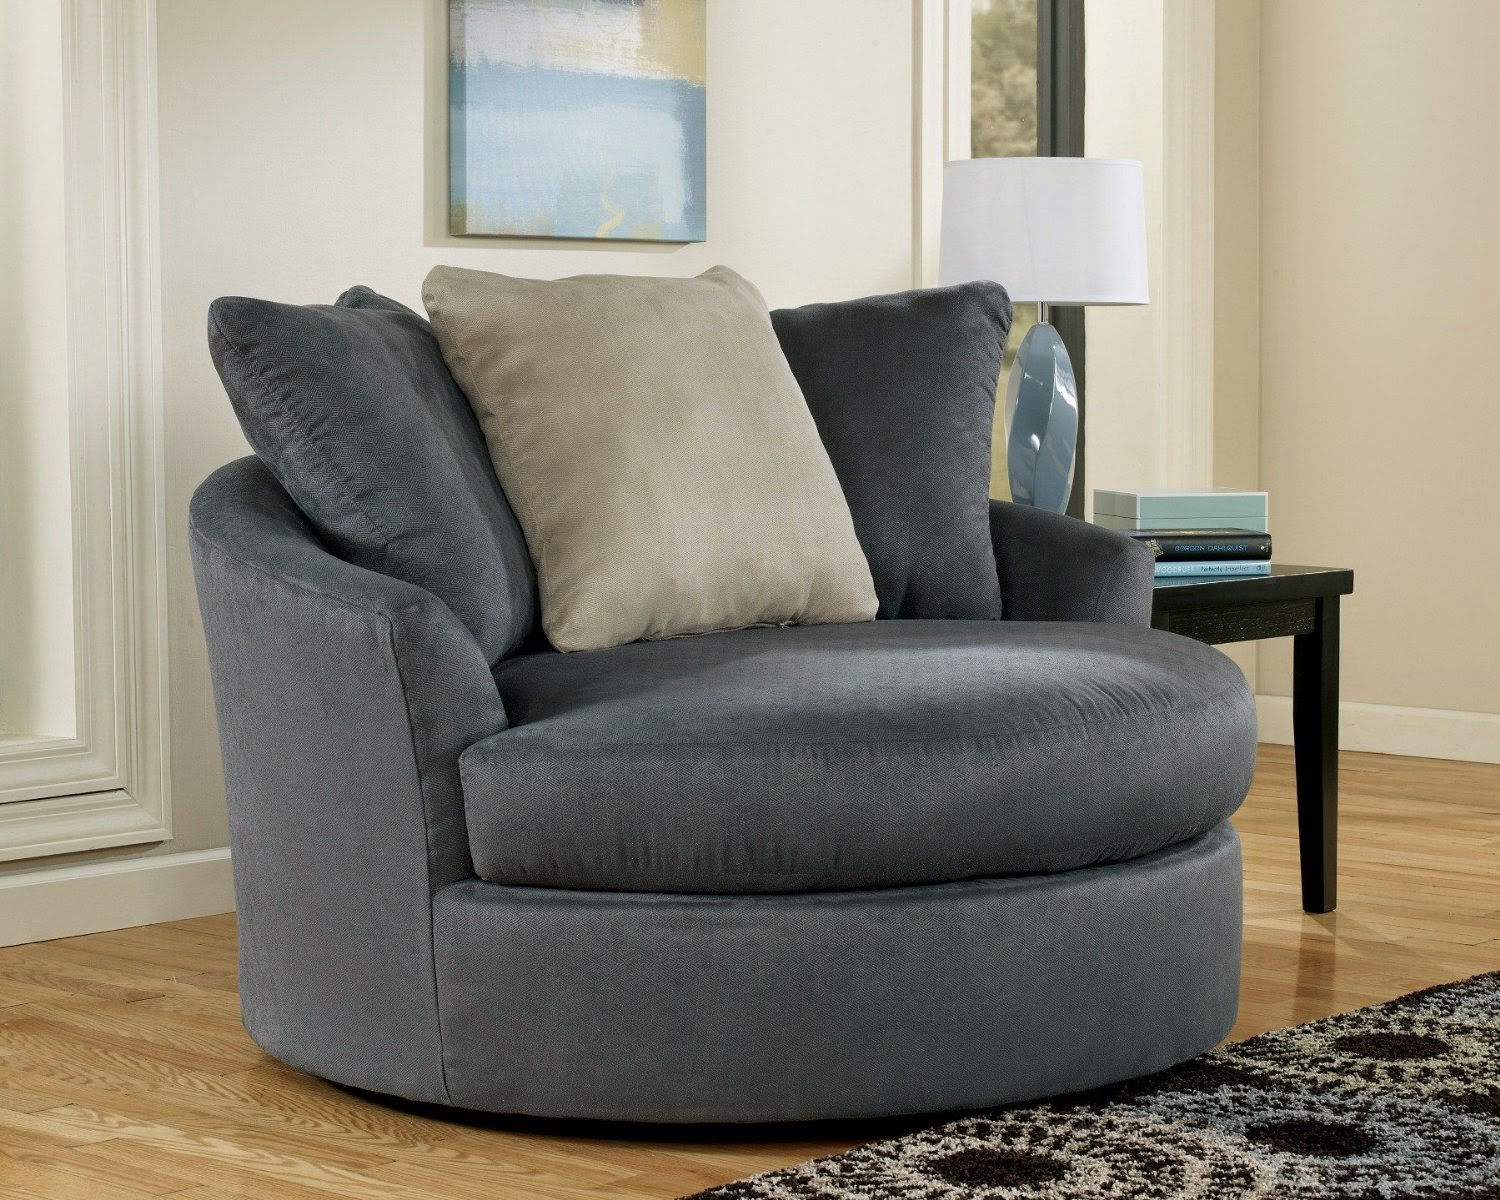 Oversized Living Room Chair Monogrammed Childrens Cuddle Couch For Sale